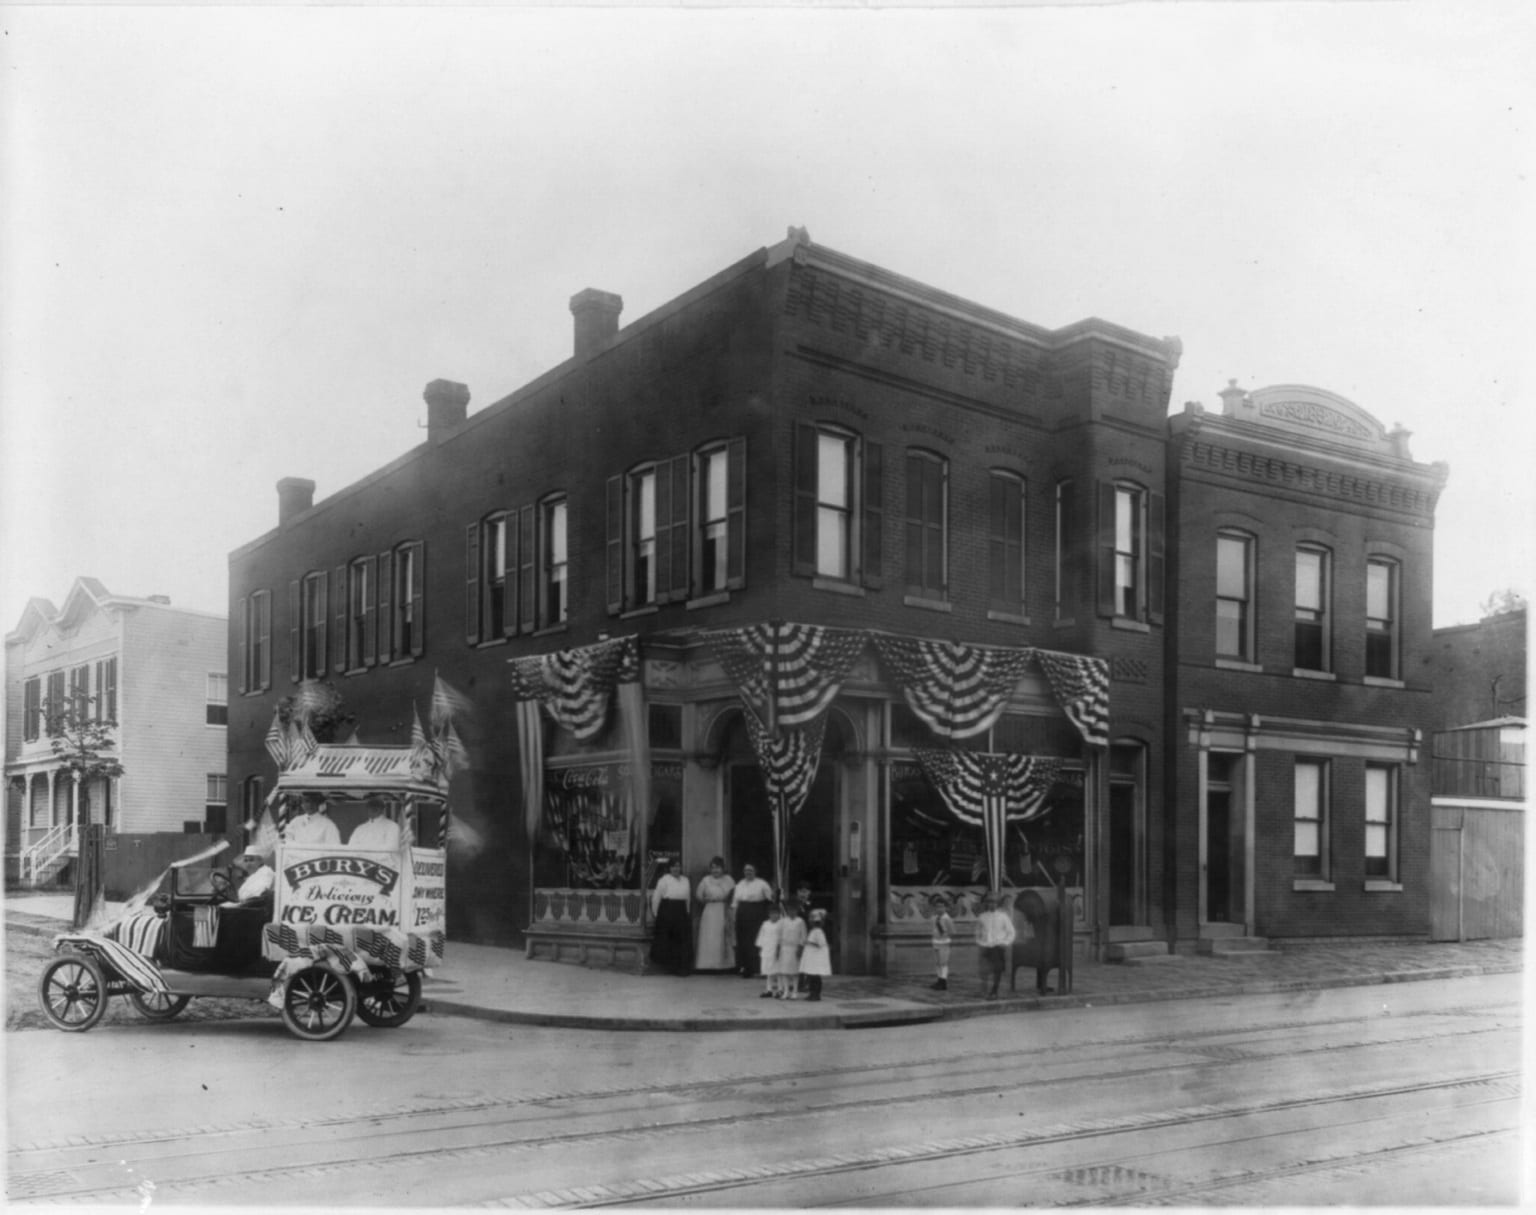 Then and Now: Bury's Drug Store to Uniontown Bar and Grill